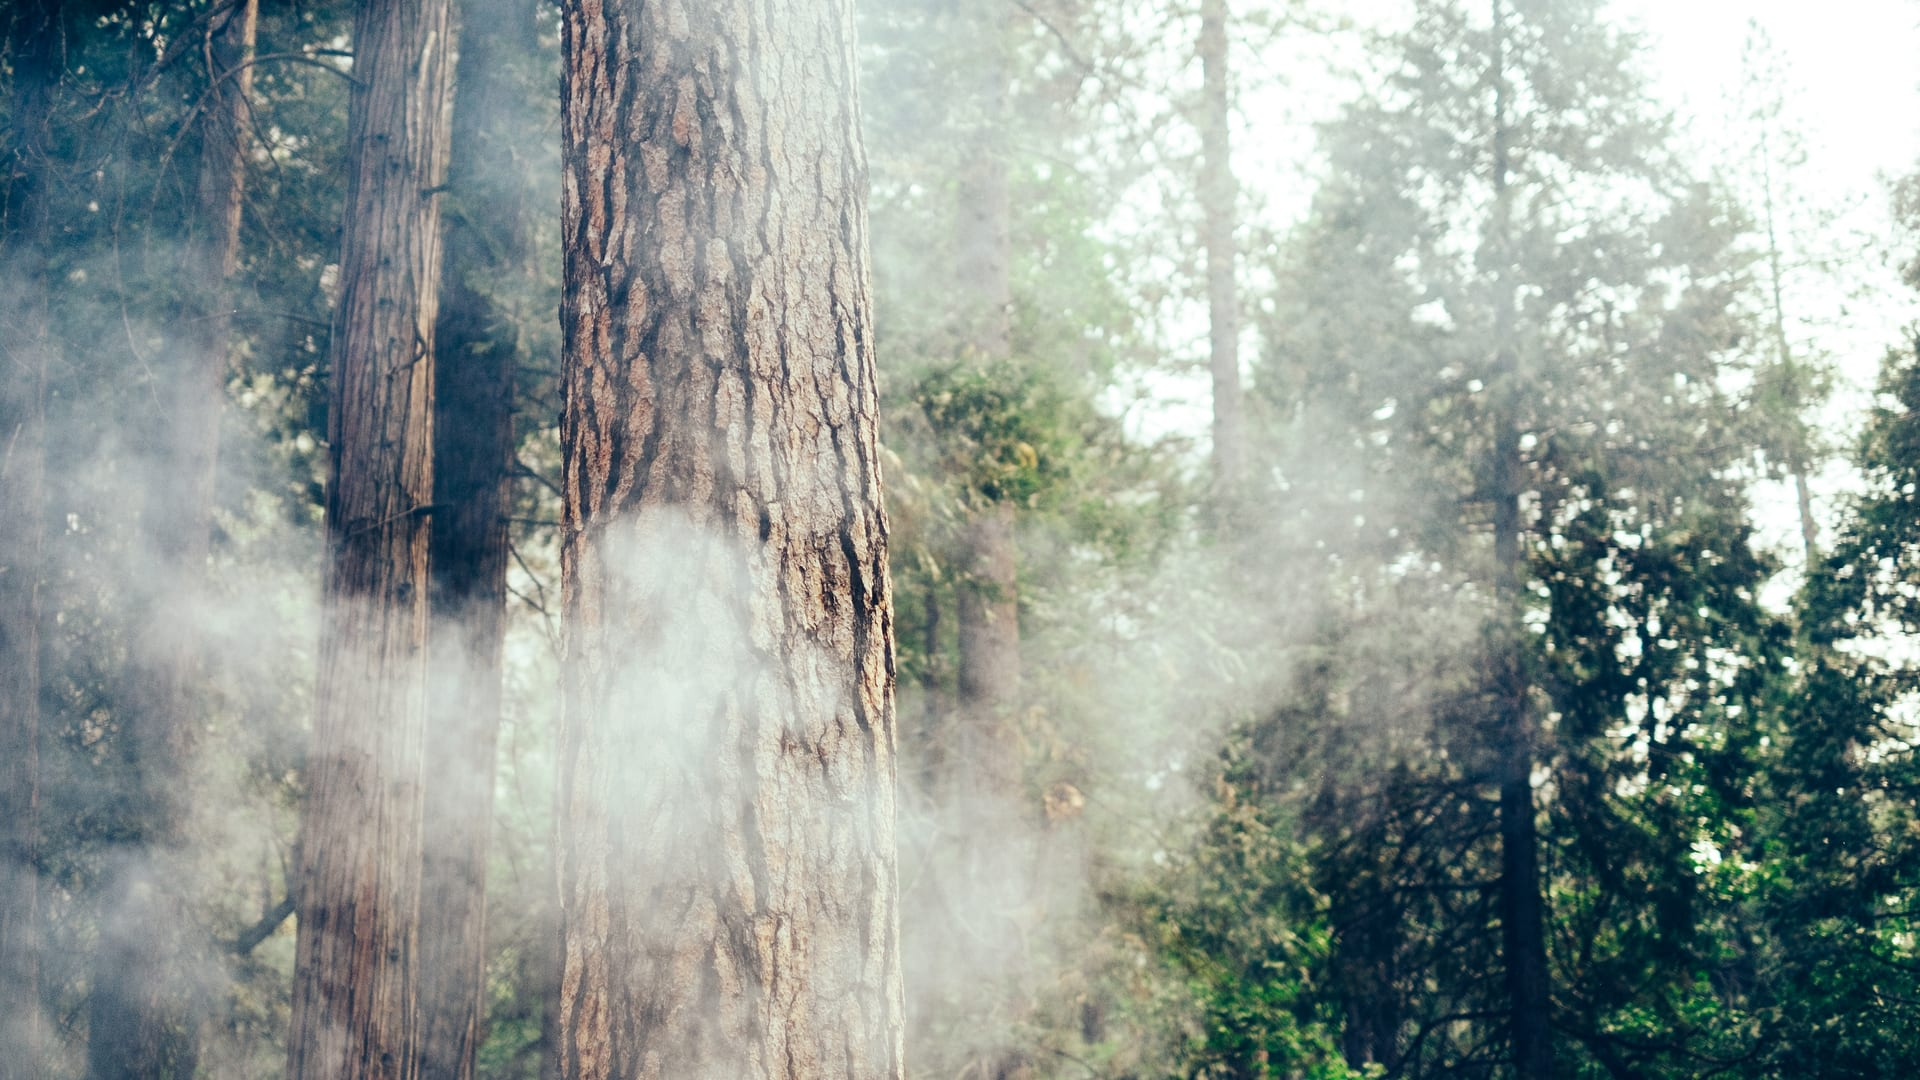 How to Take a Safe and Responsible RV Trip During Wildfire Season